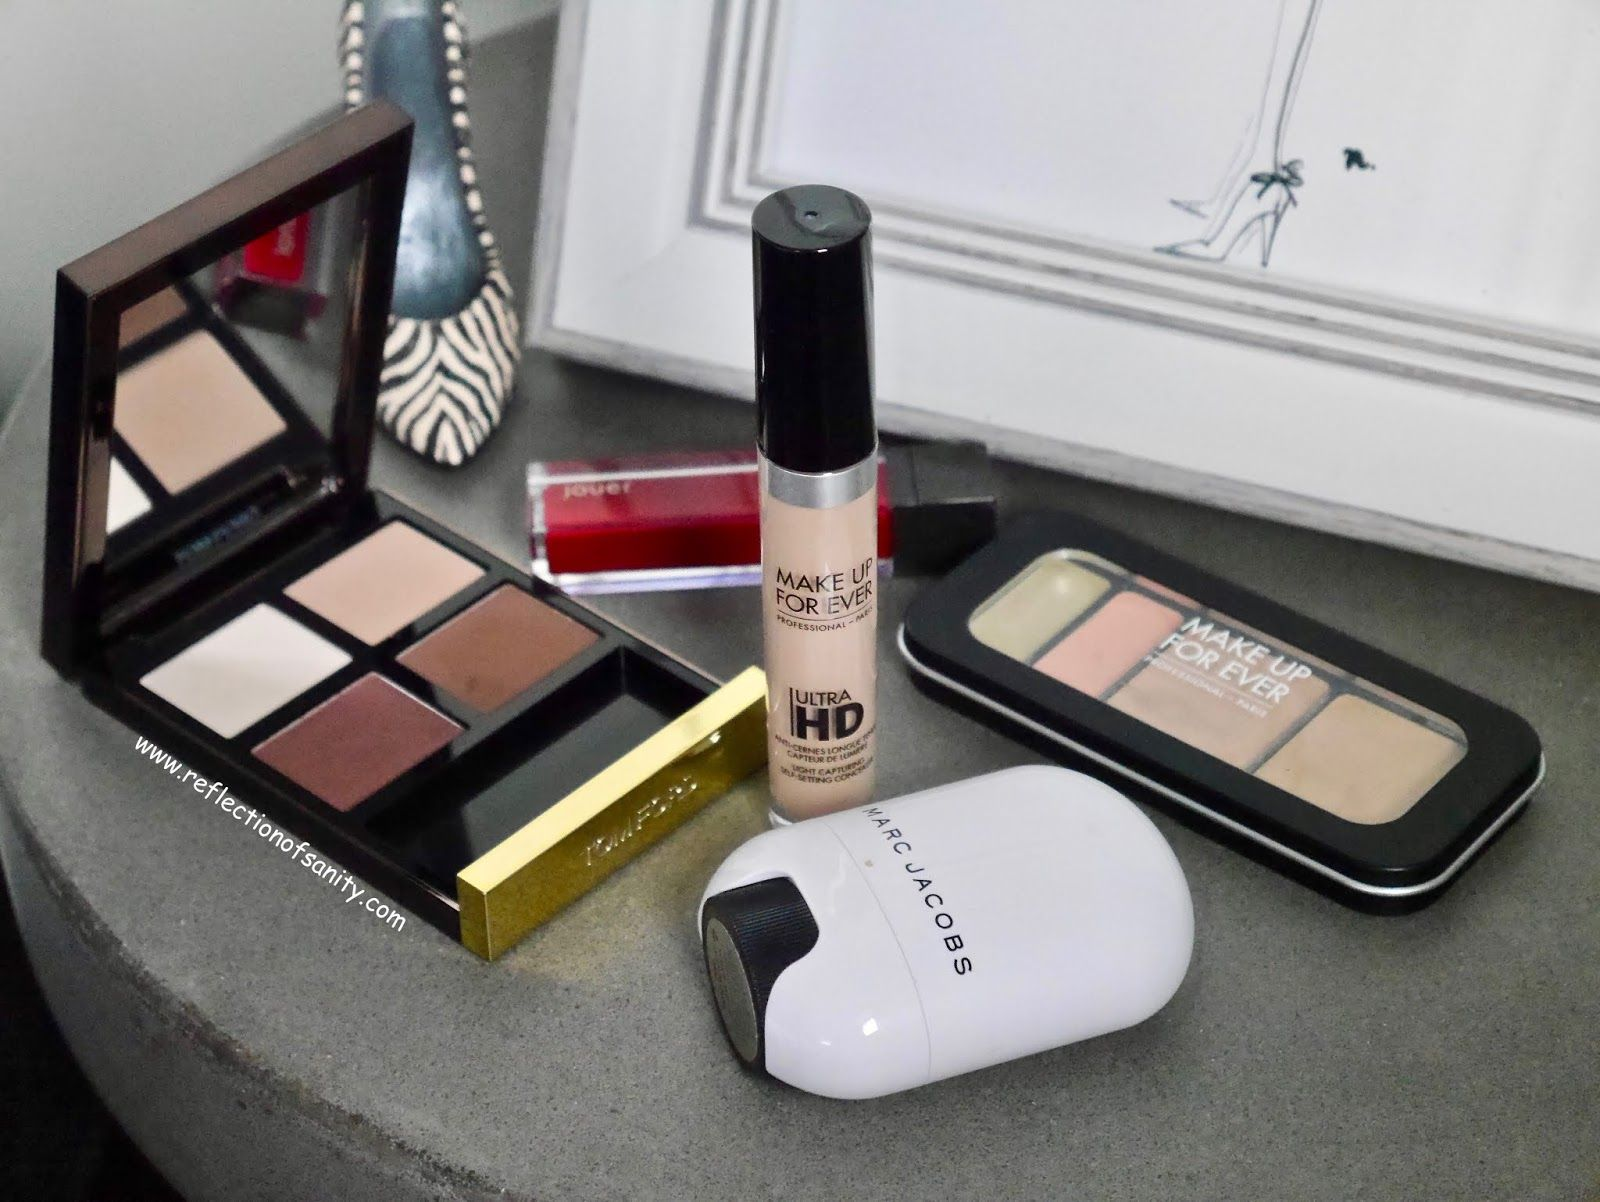 MAKE UP FOR EVER ULTRA HD SELFSETTING CONCEALER